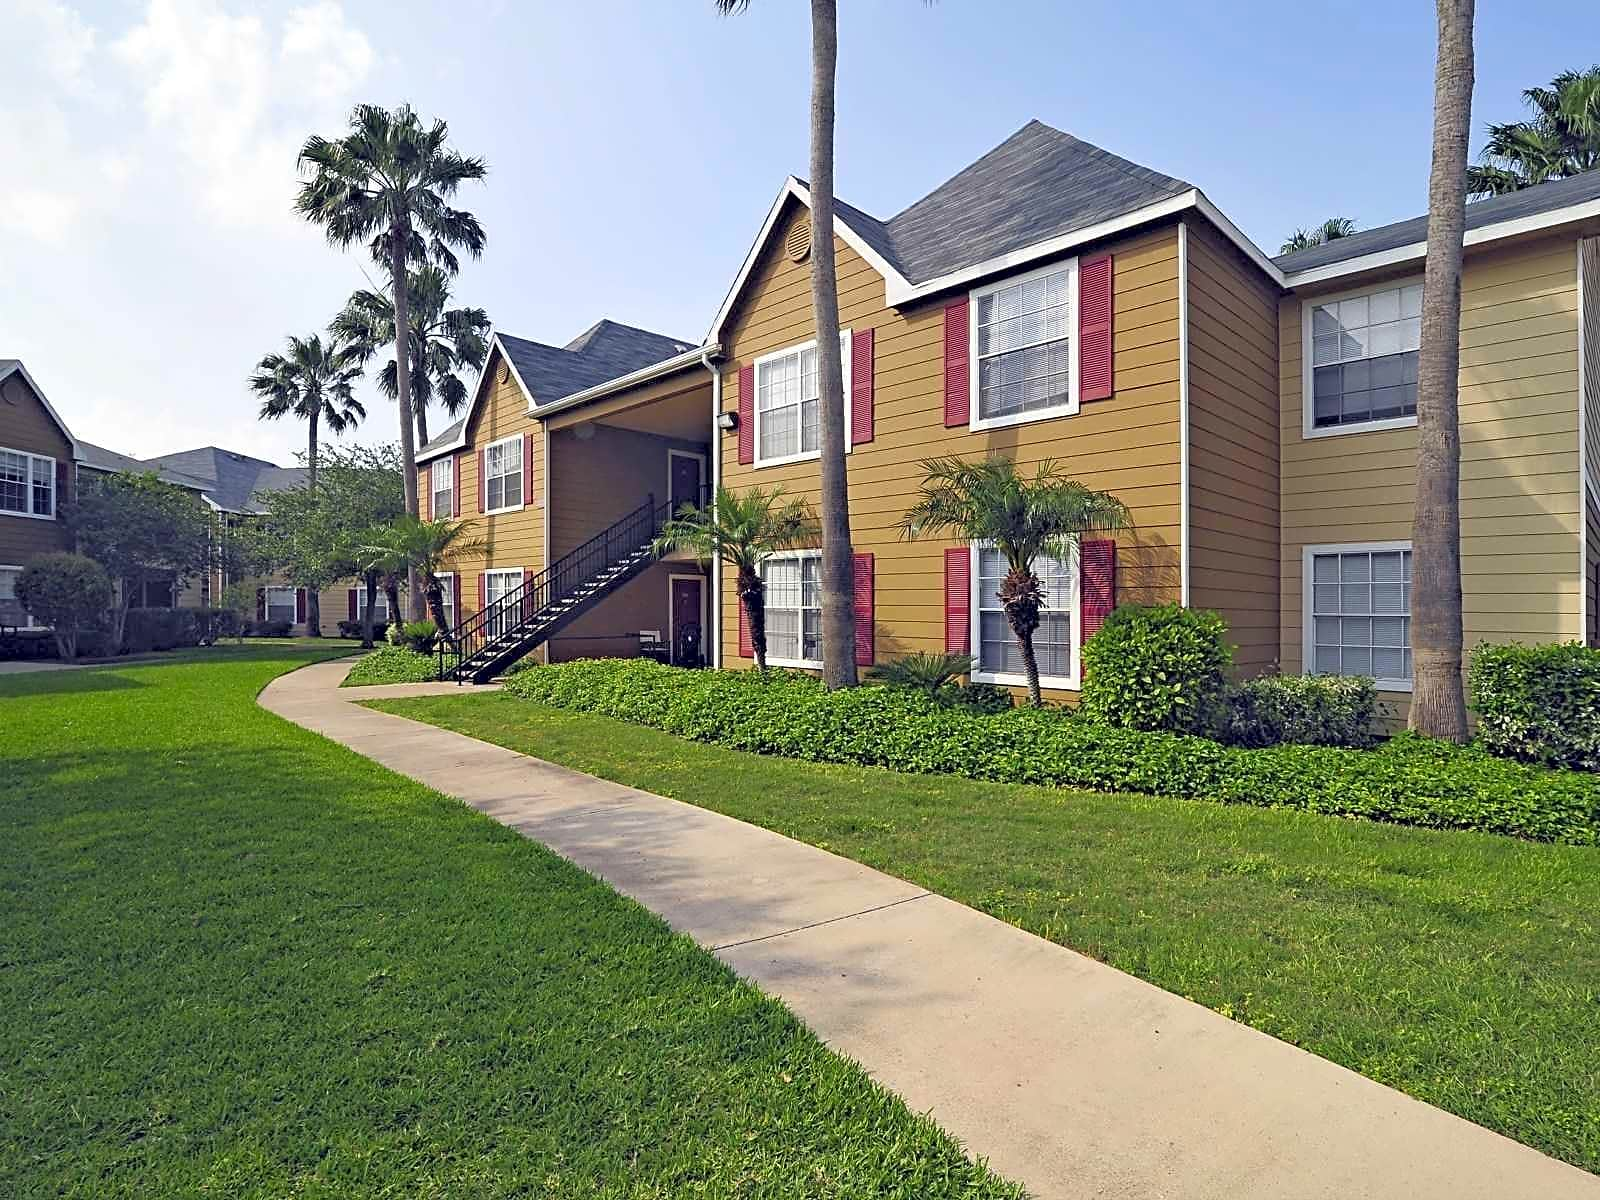 Apartments Near Southern Careers Institute-Harlingen Cornerstone Apartments for Southern Careers Institute-Harlingen Students in Harlingen, TX